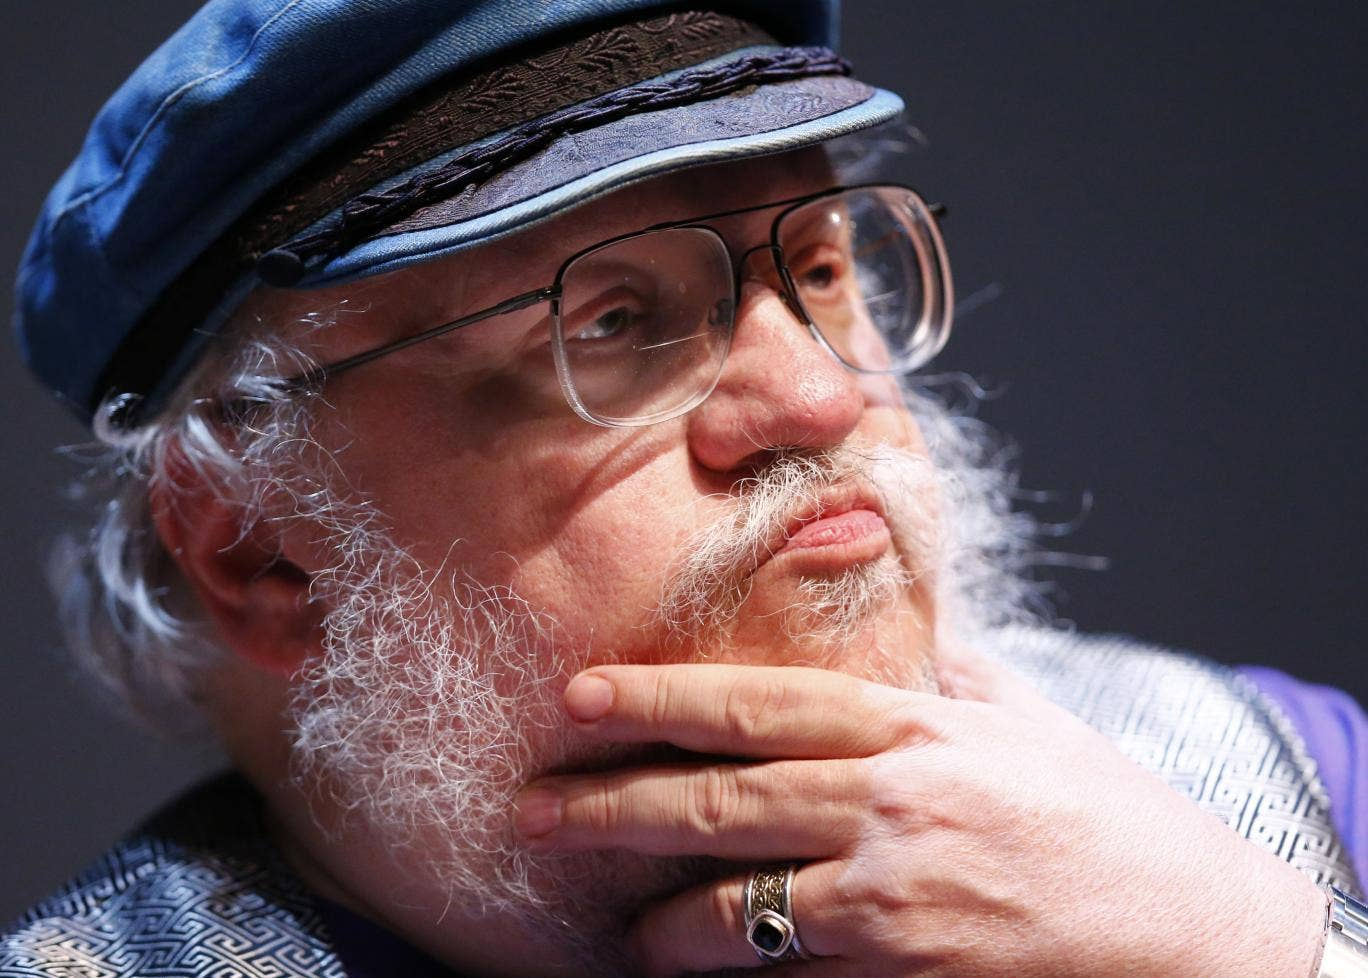 Female fans want more explicit male sex in Game of Thrones, George R R Martin says